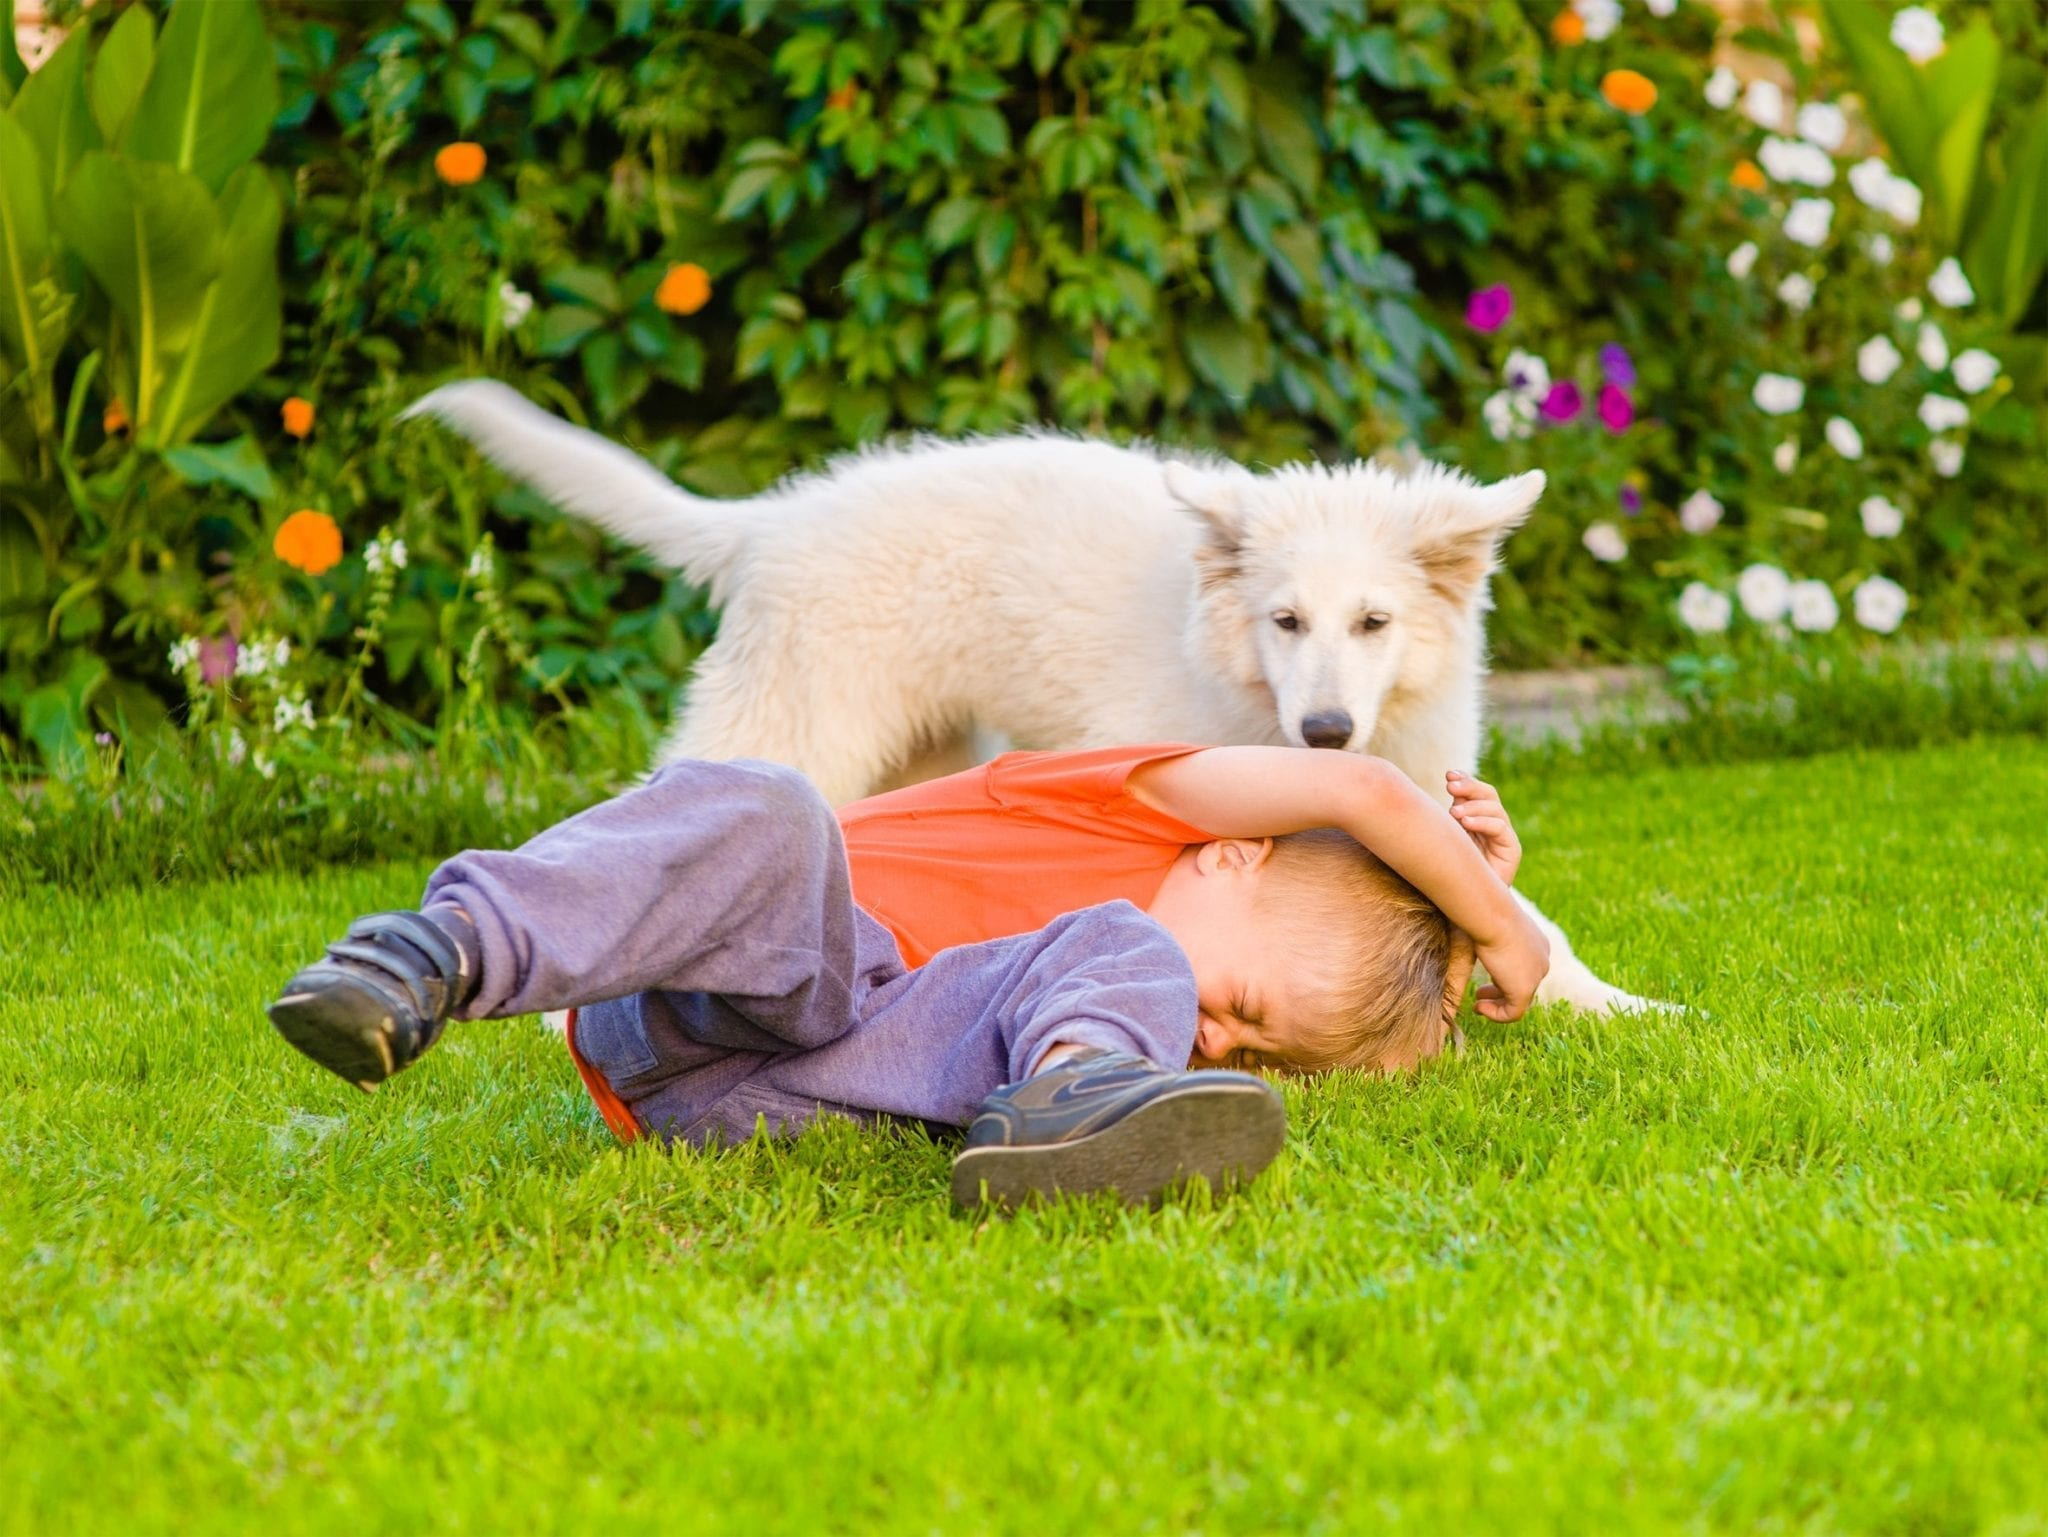 If Your Child Is Attacked By a Dog or Wild Animal